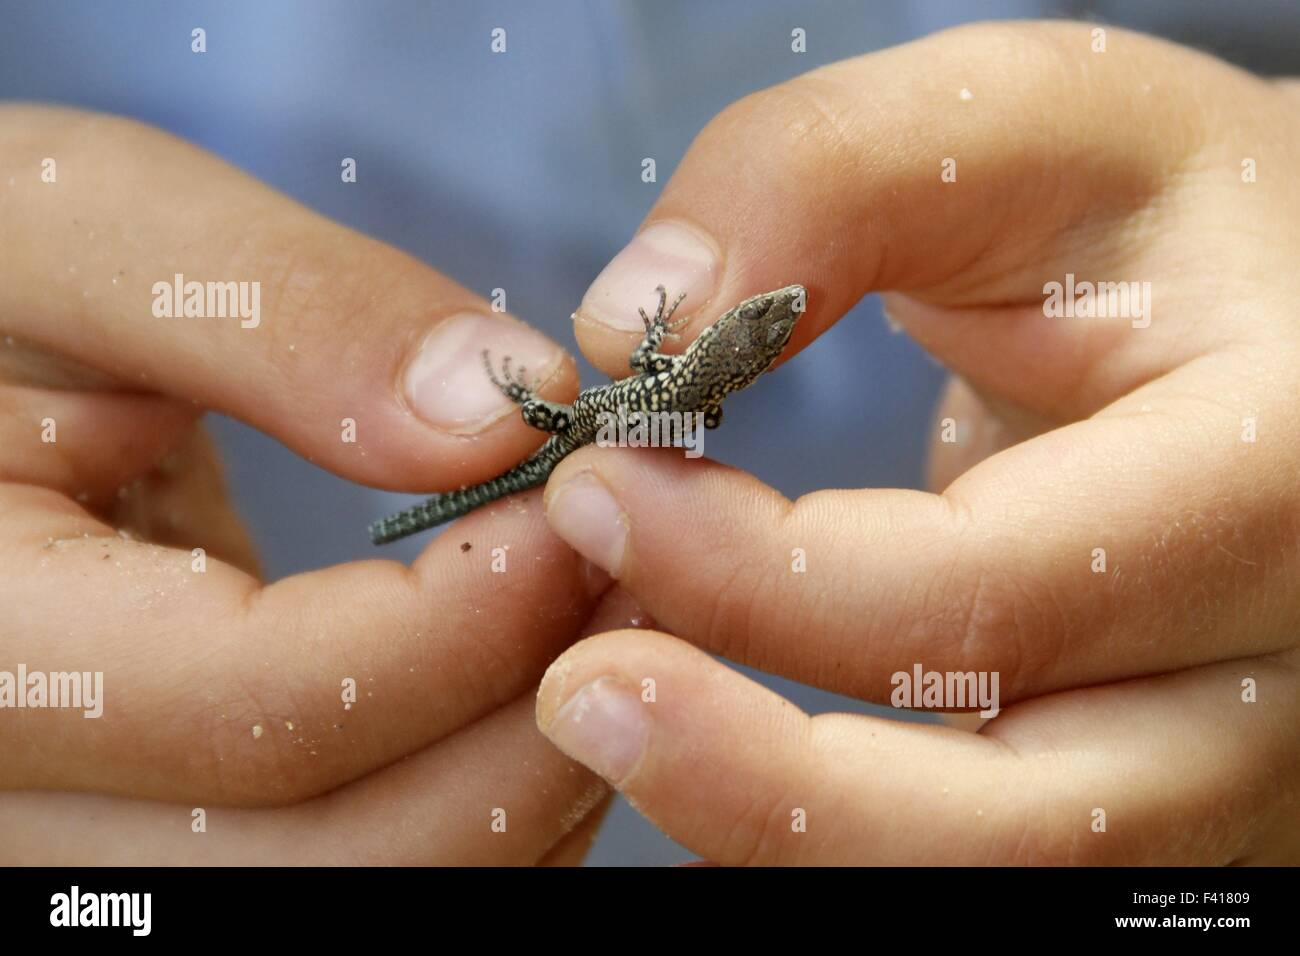 Little frightened lizard in two child hands - Stock Image